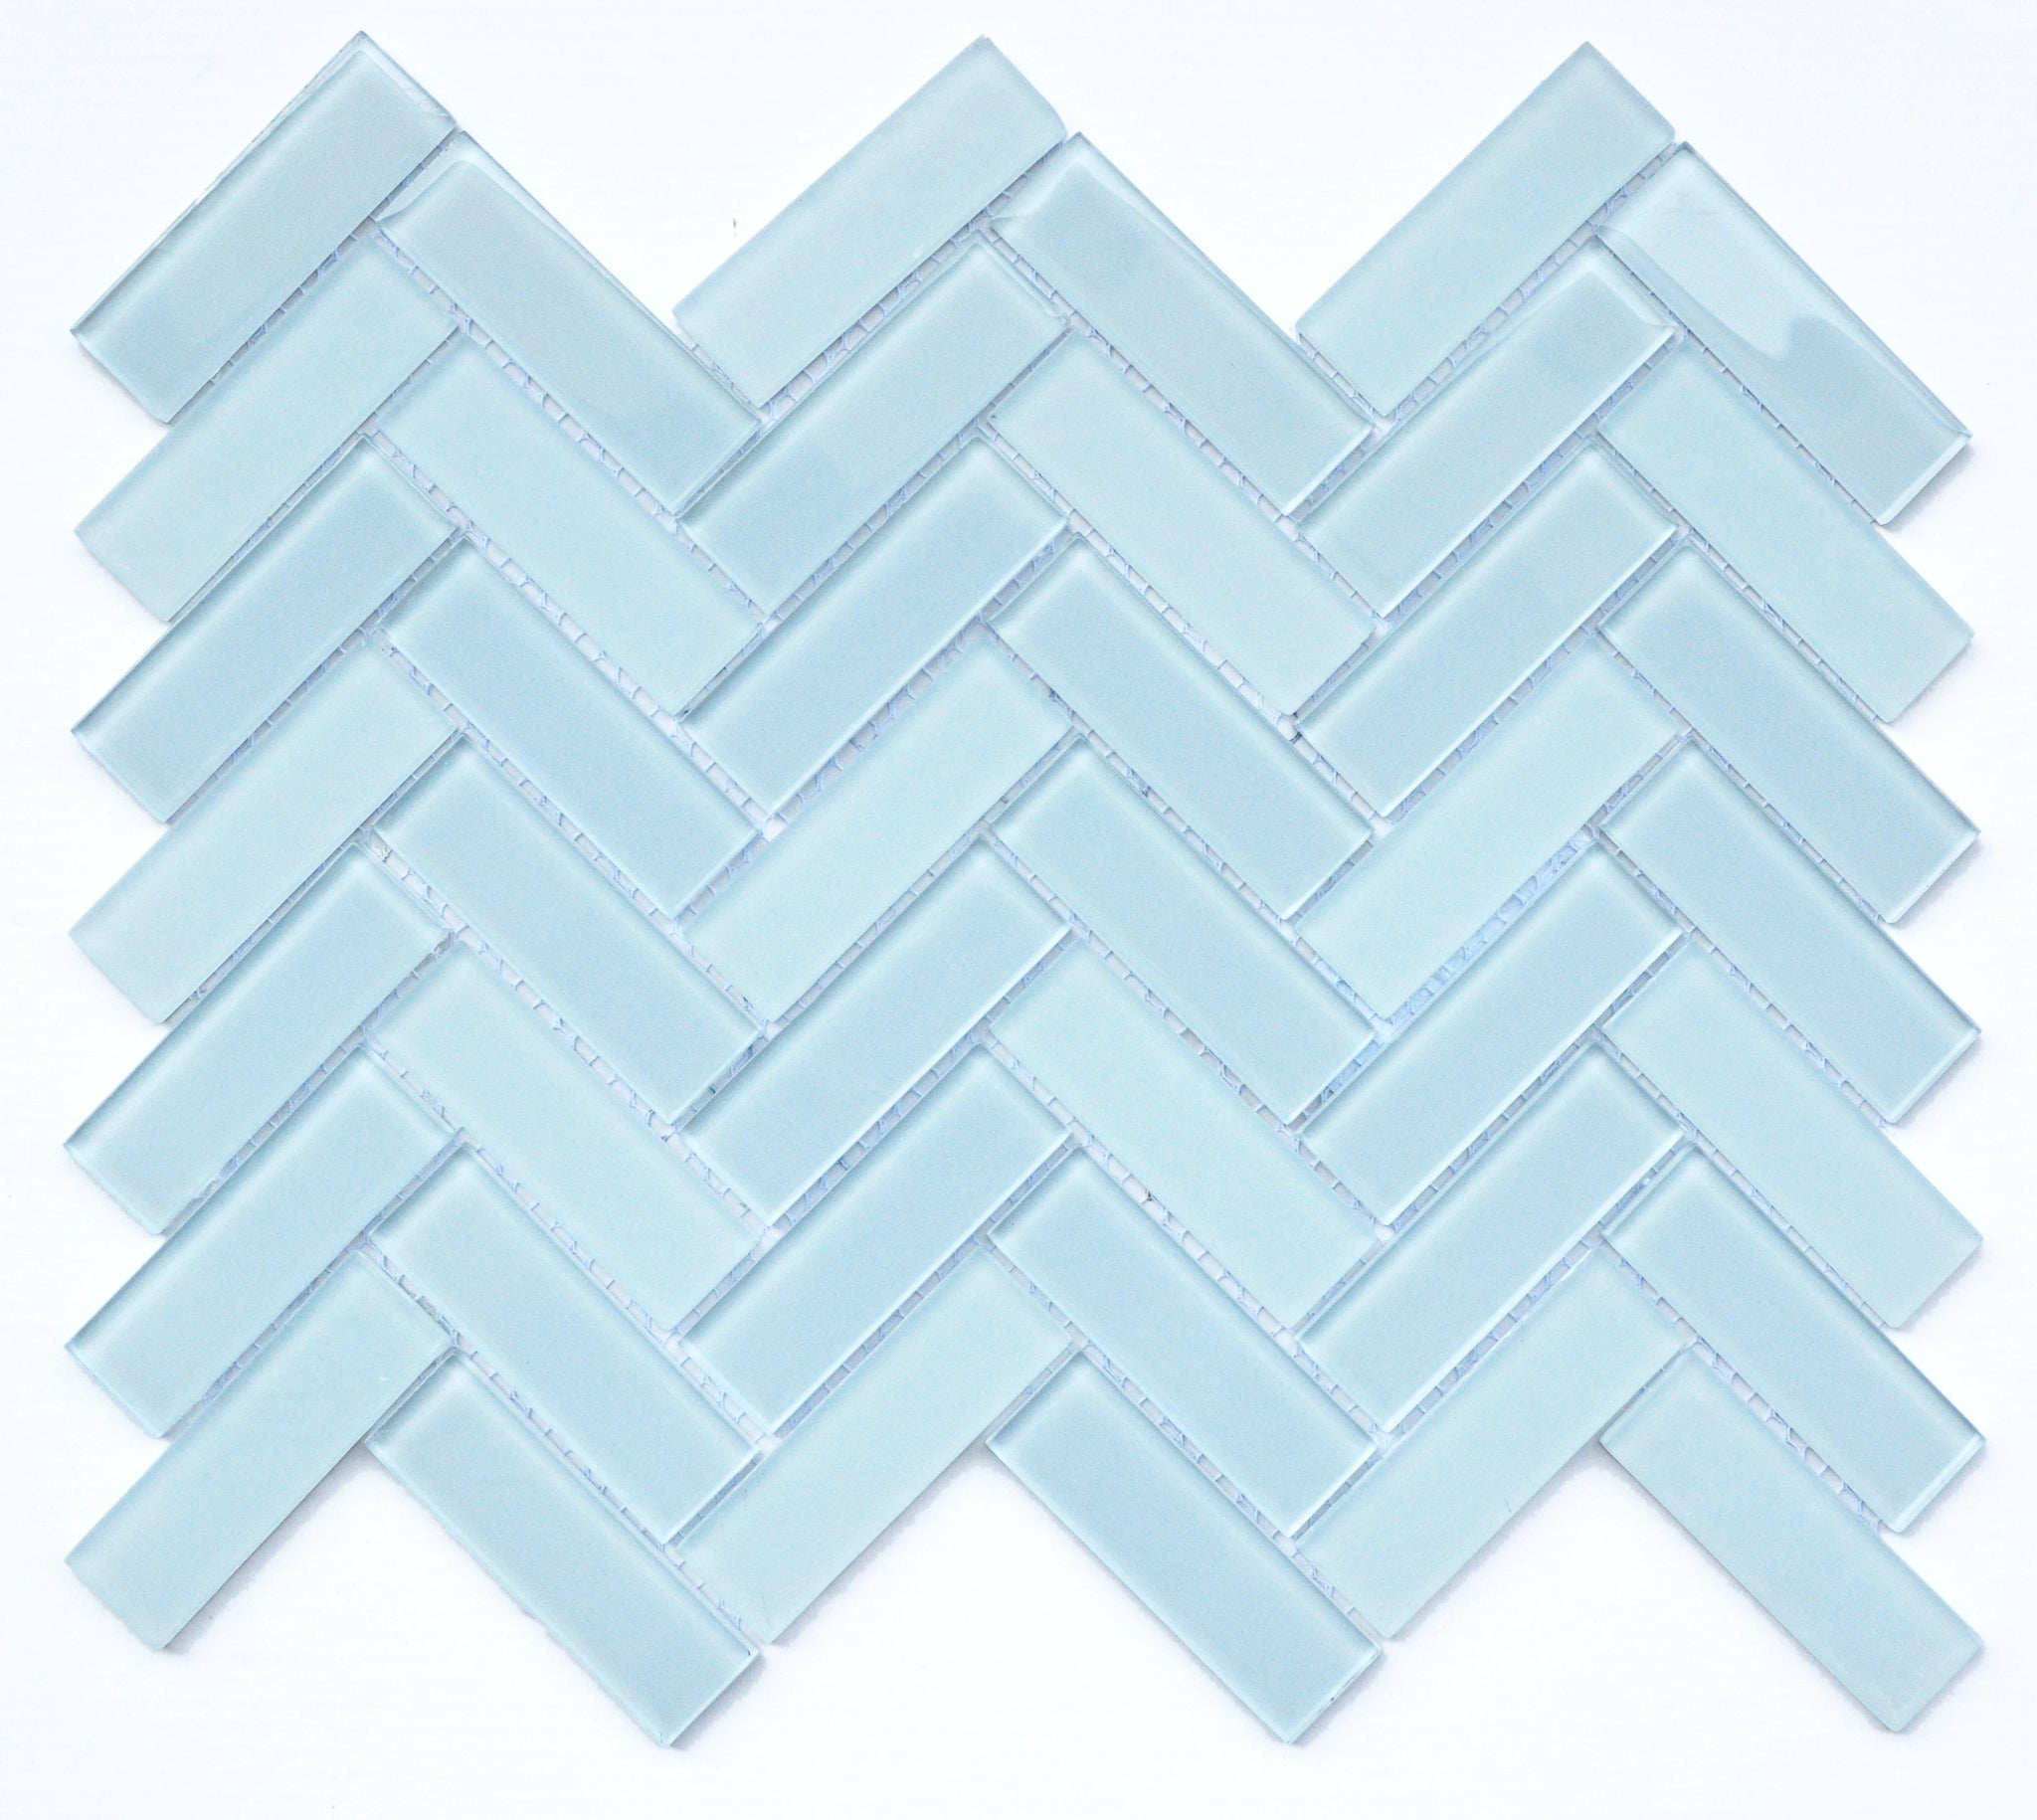 Charisma Glass Herringbone Mosaic Tile Poise